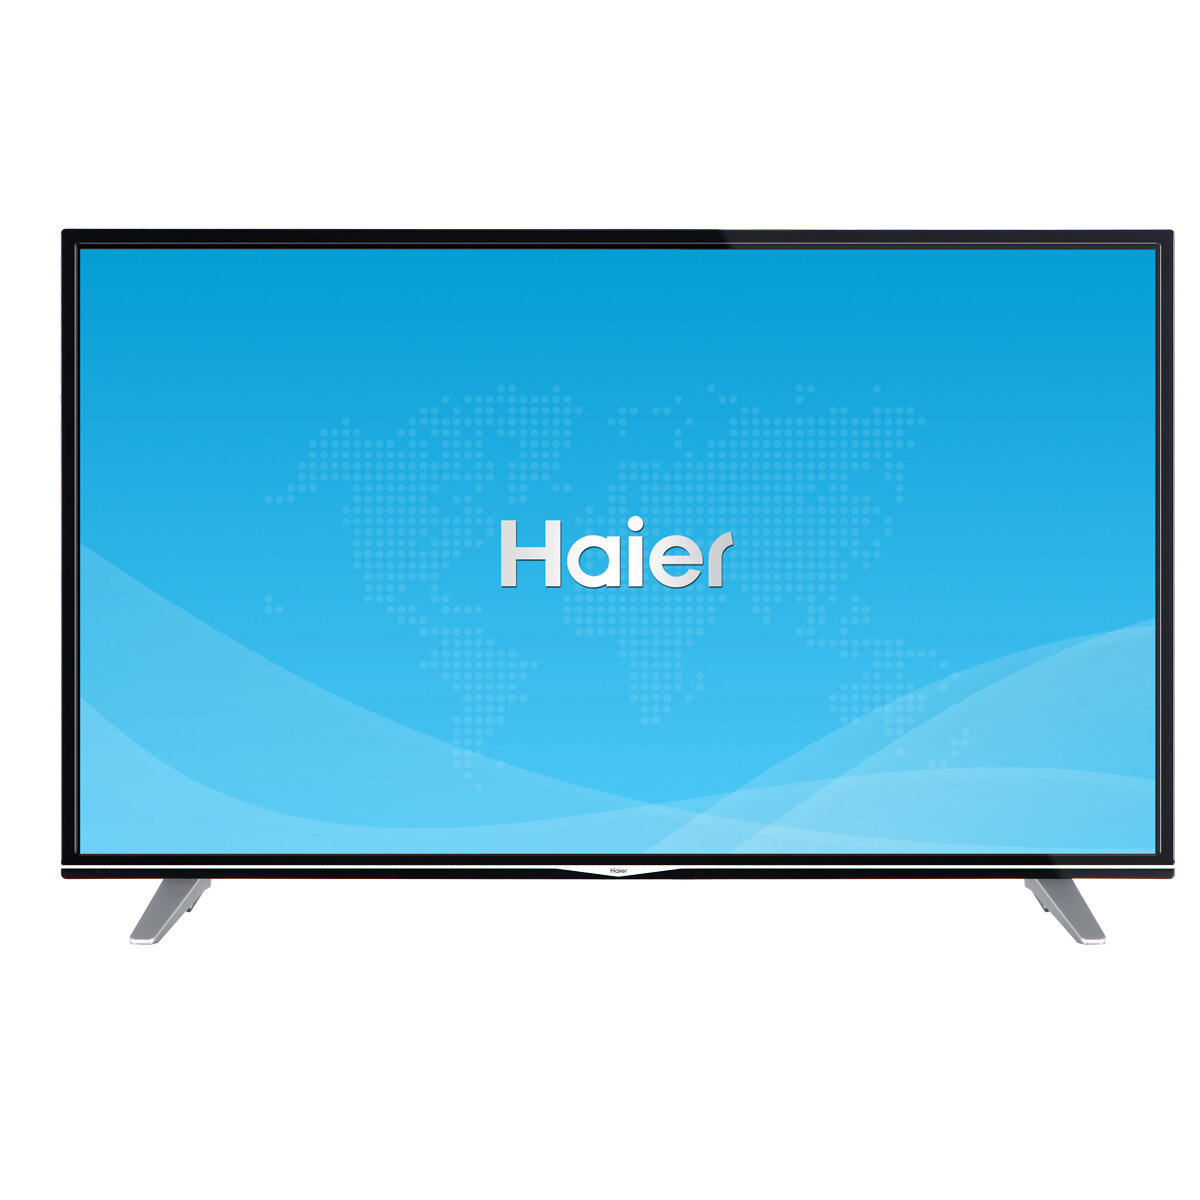 [US$467 13] Haier U49H7000 49 Inch DVB-T/T2/S/S2/C Smart TV Television  Support 4K Netflix Dolby Digital Plus DTS HD Home Audio & Video from